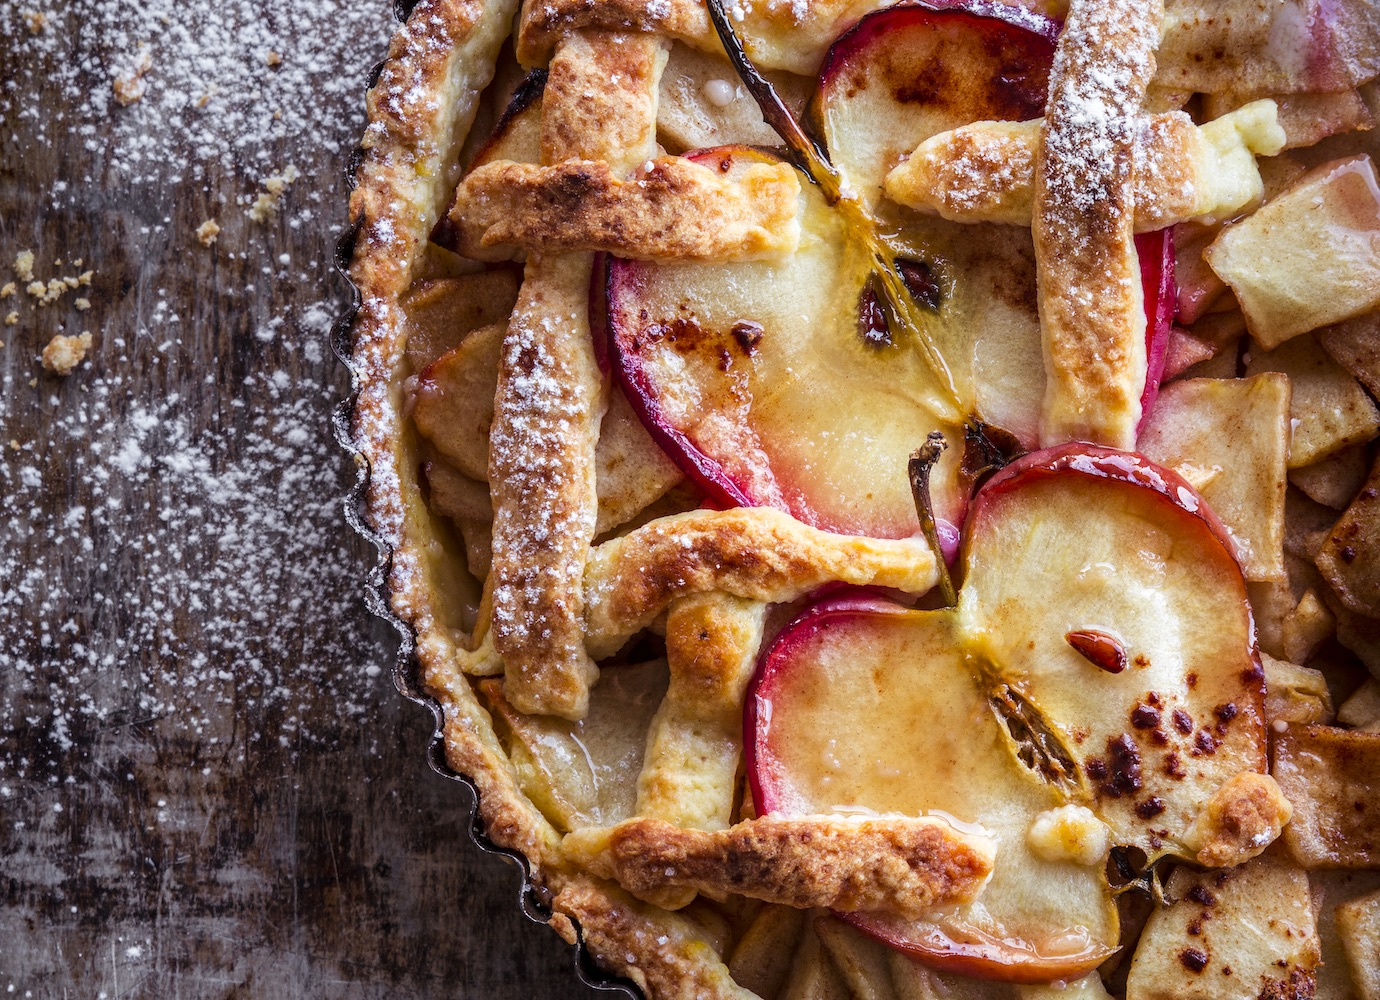 Bake it till you make it: Polish photographer wins top food photo prize for apple pie shot